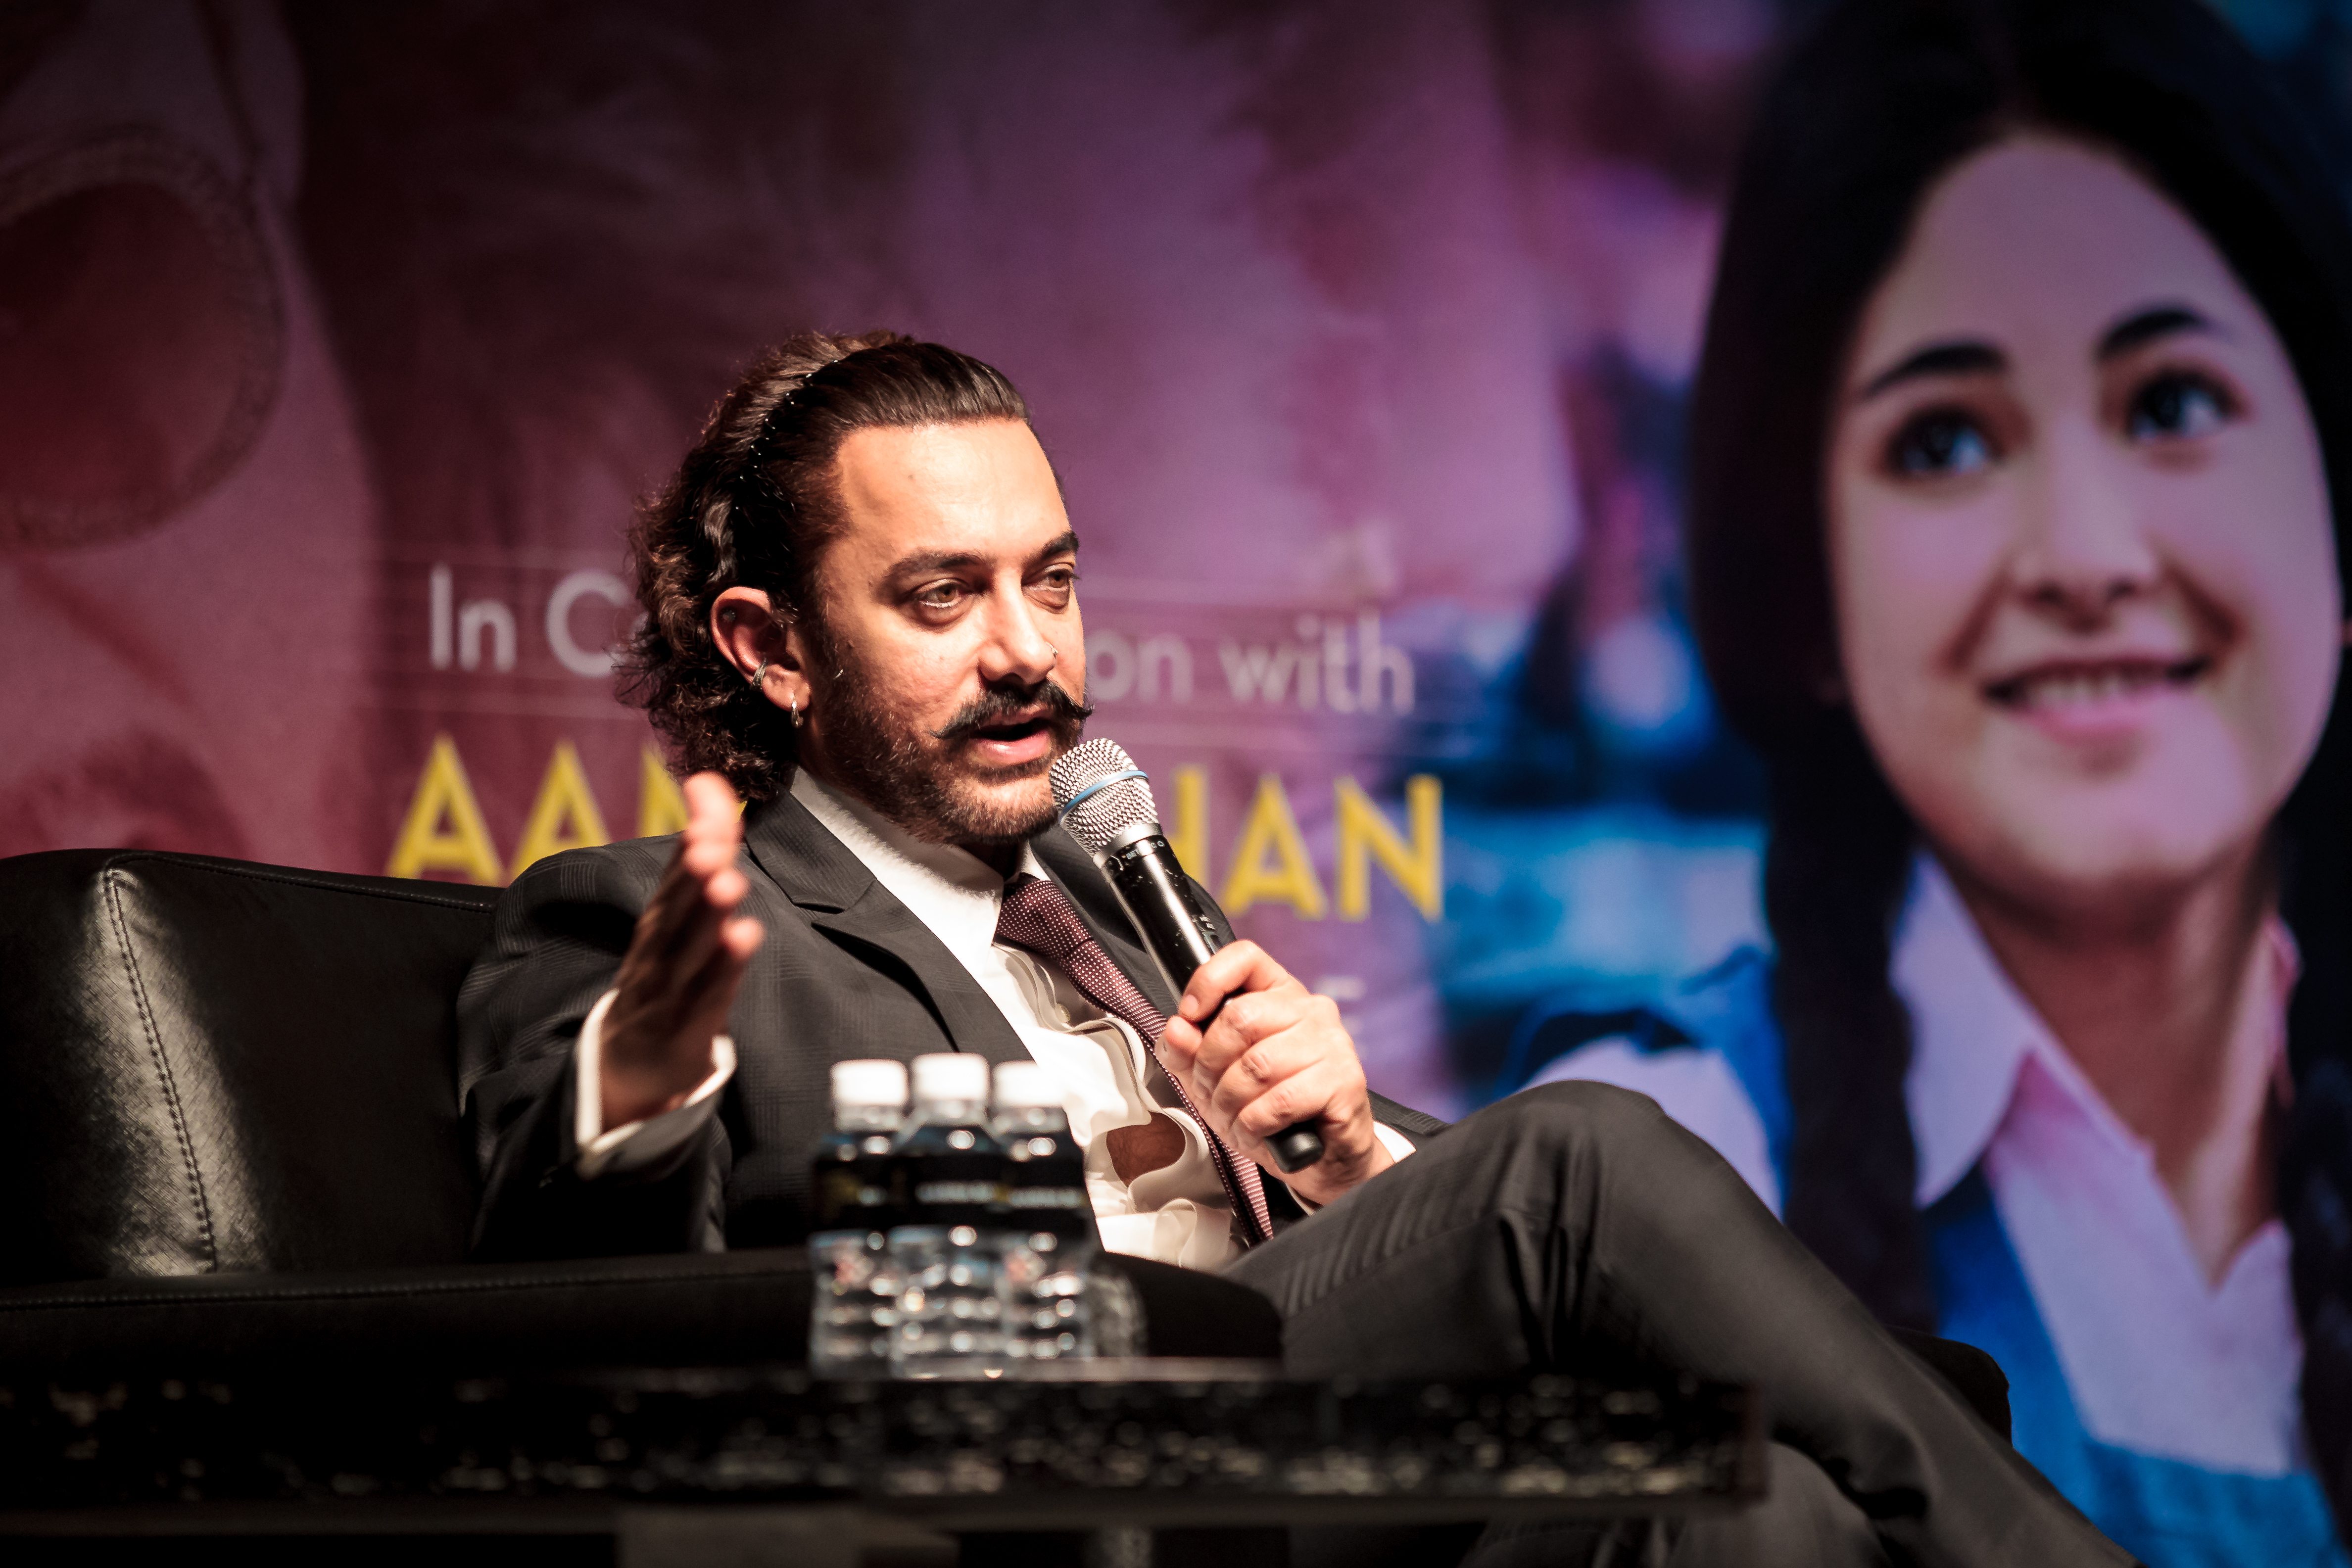 Bollywood star Aamir Khan talking about his latest film Secret Superstar, which is releasing in Singapore this Diwali.